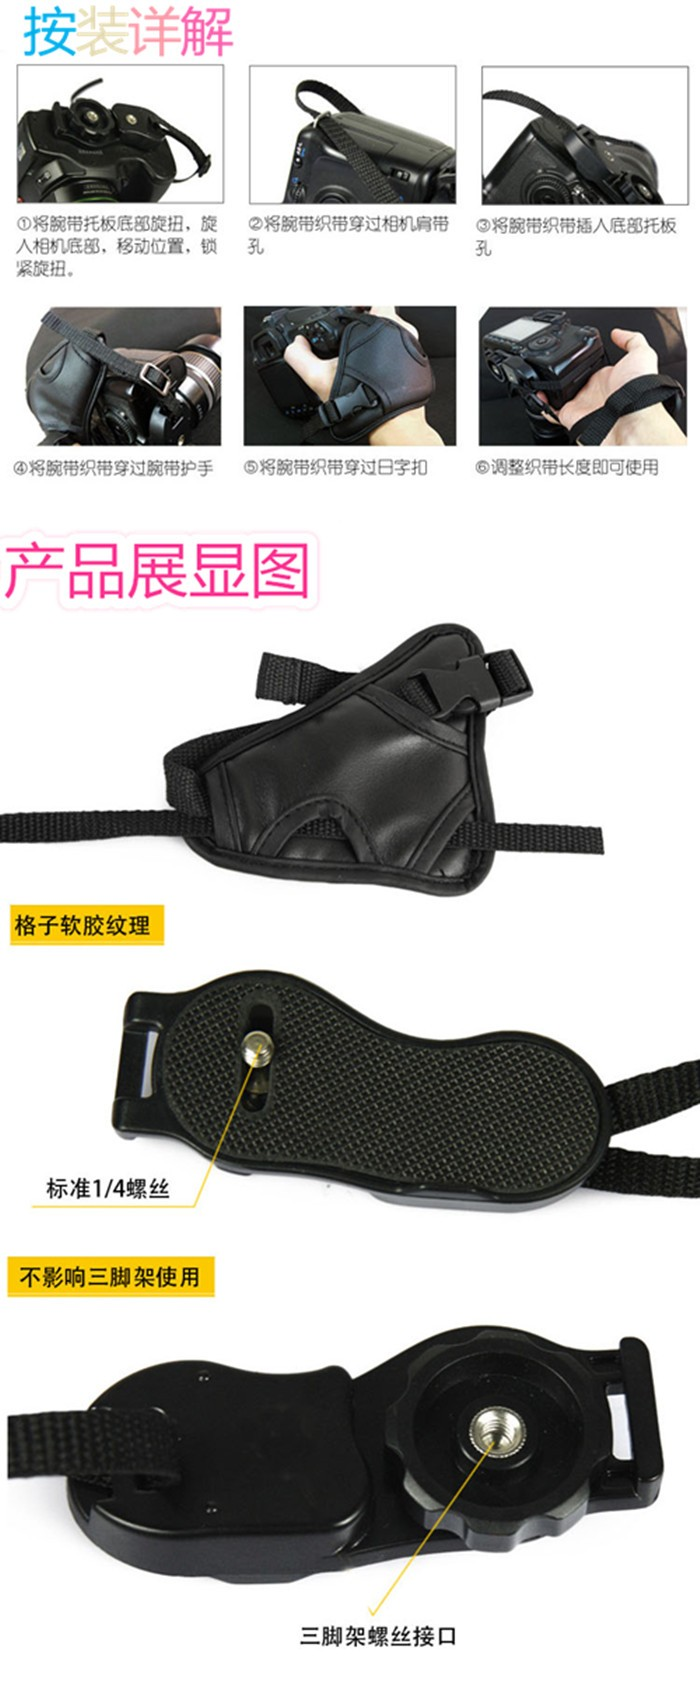 image for MATIAN Camera  Black Large Triangle Leather Soft Wrist Hand Strap For